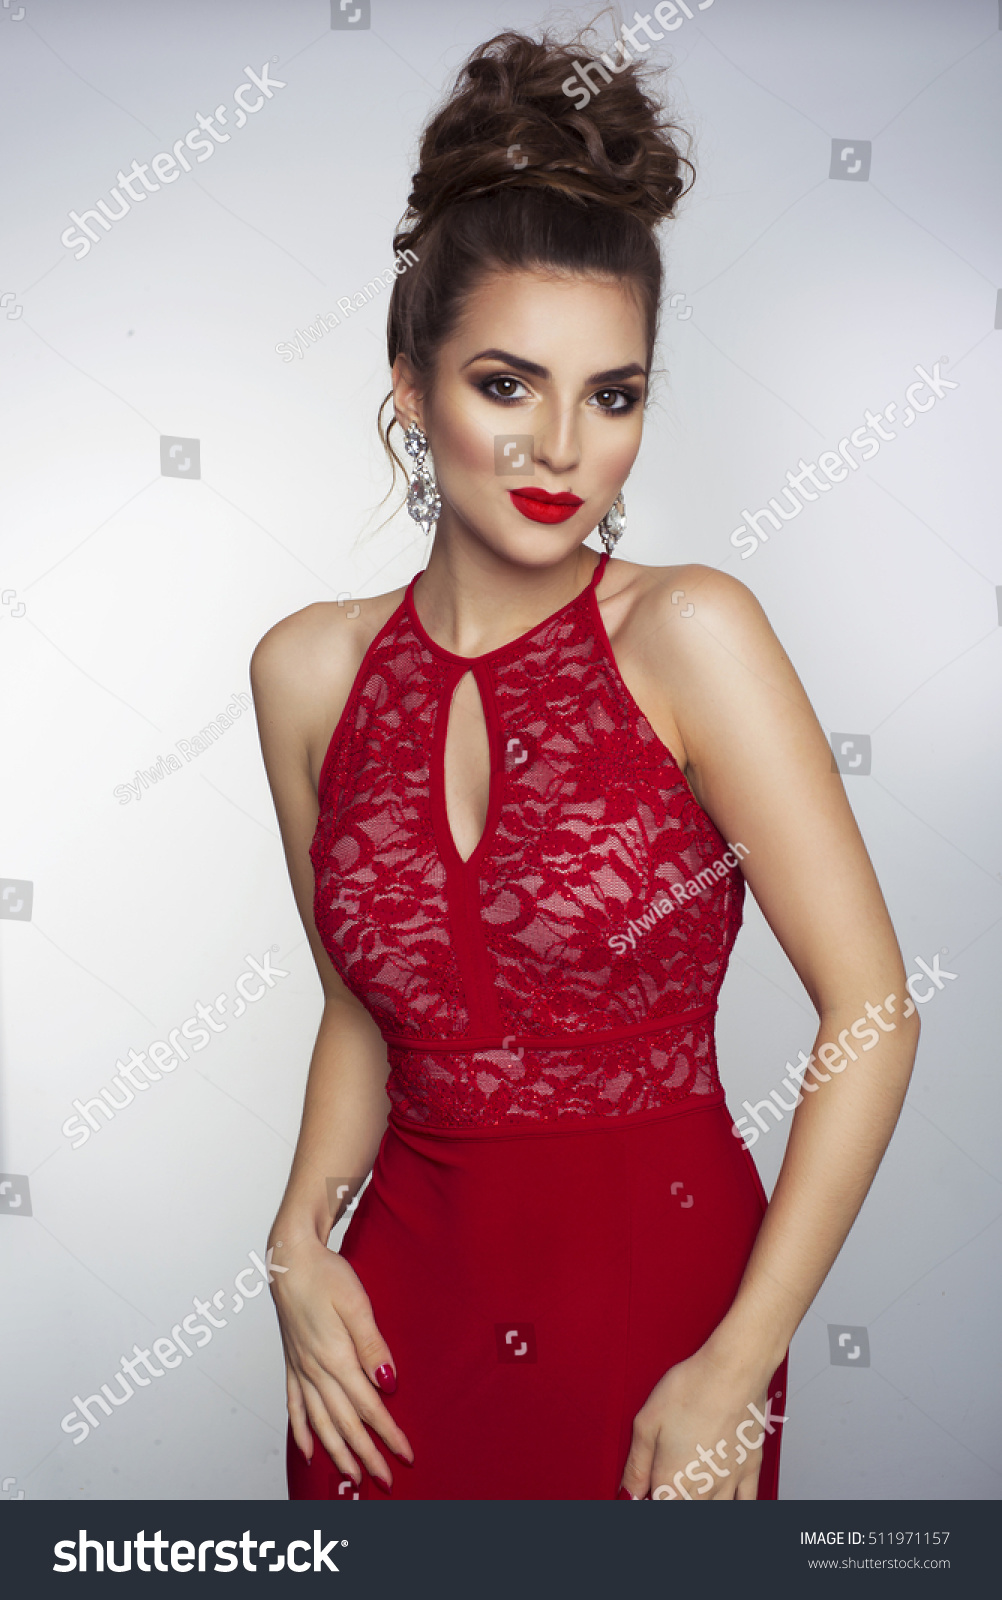 Party Photo Of Elegance Sexy Lady In Red Dress With Red Lips And Brunette Beautiful Hair